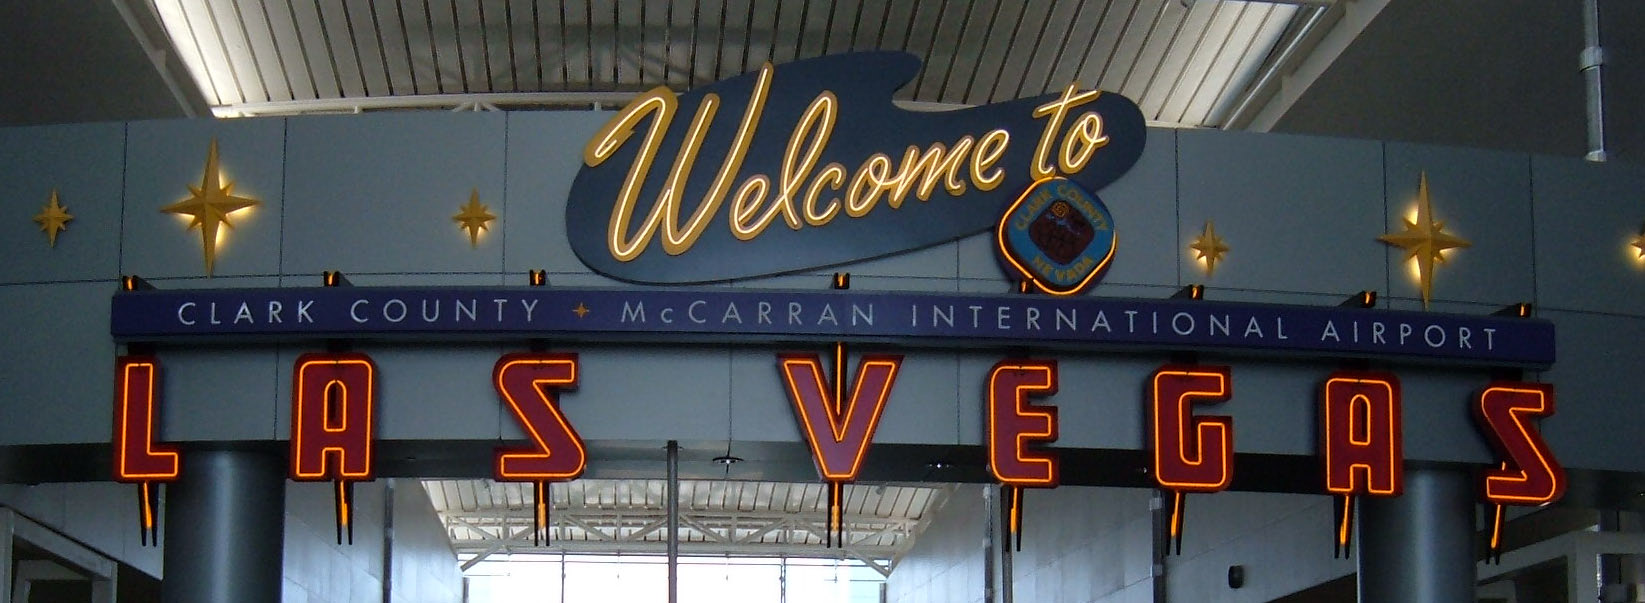 Welcome to McCarran airport sign at Concourse D